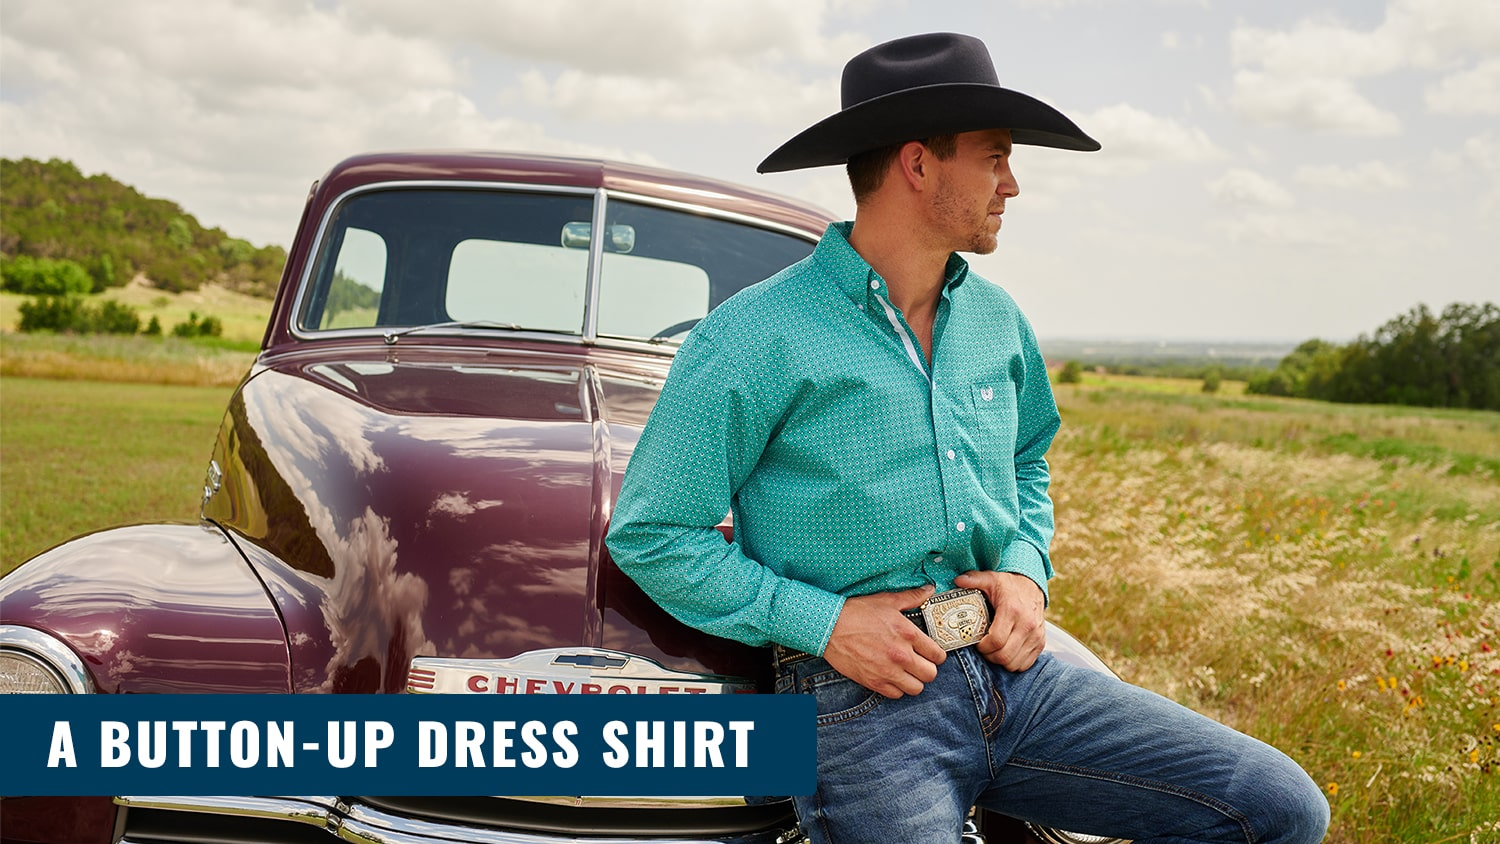 Father's Day Gift Ideas - New Duds for Dad